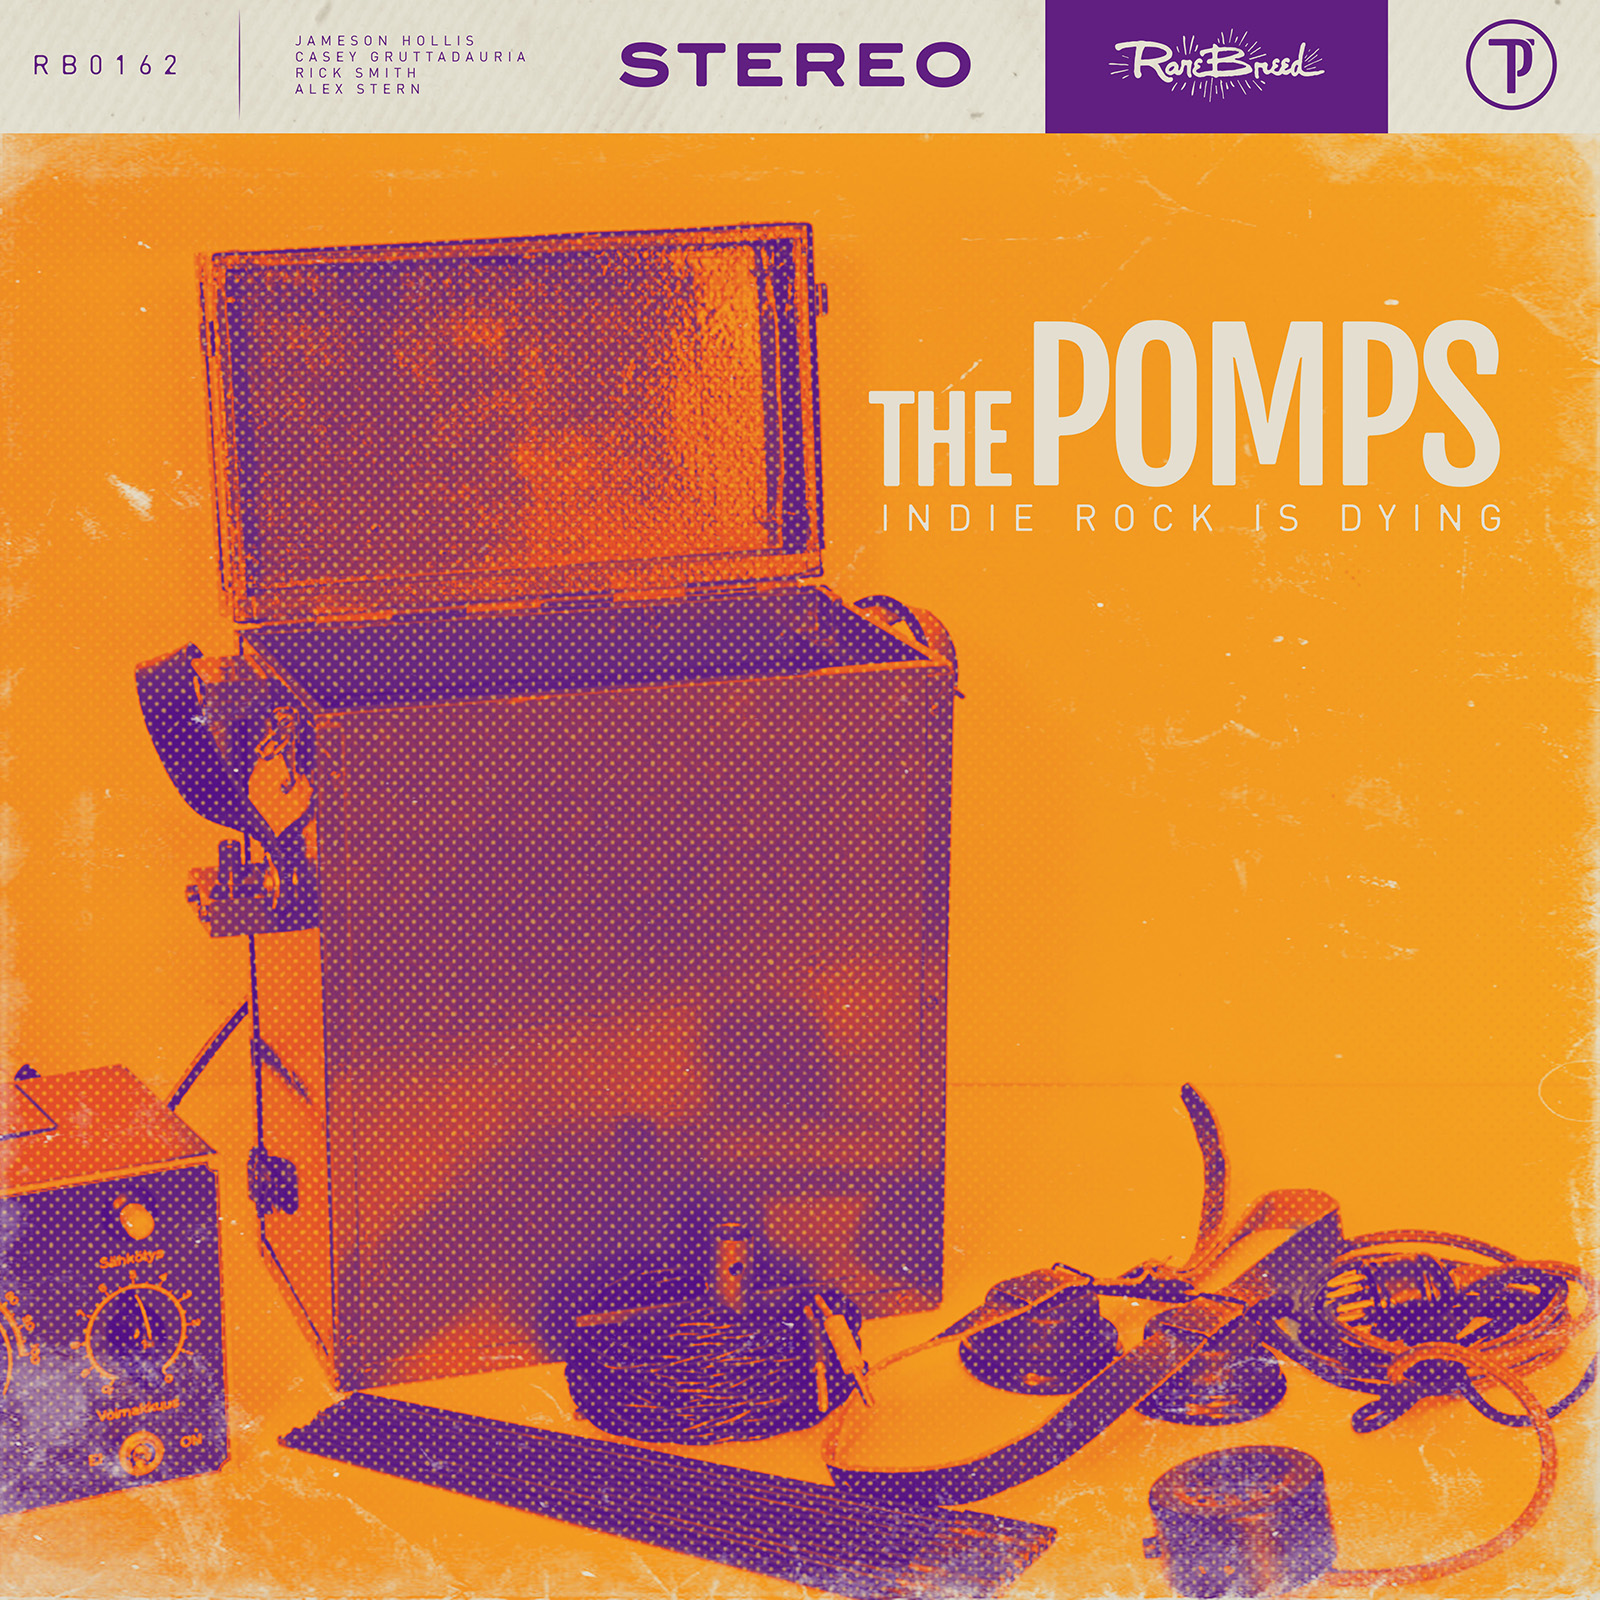 The Pomps Indie Rock is Dying Cover Art